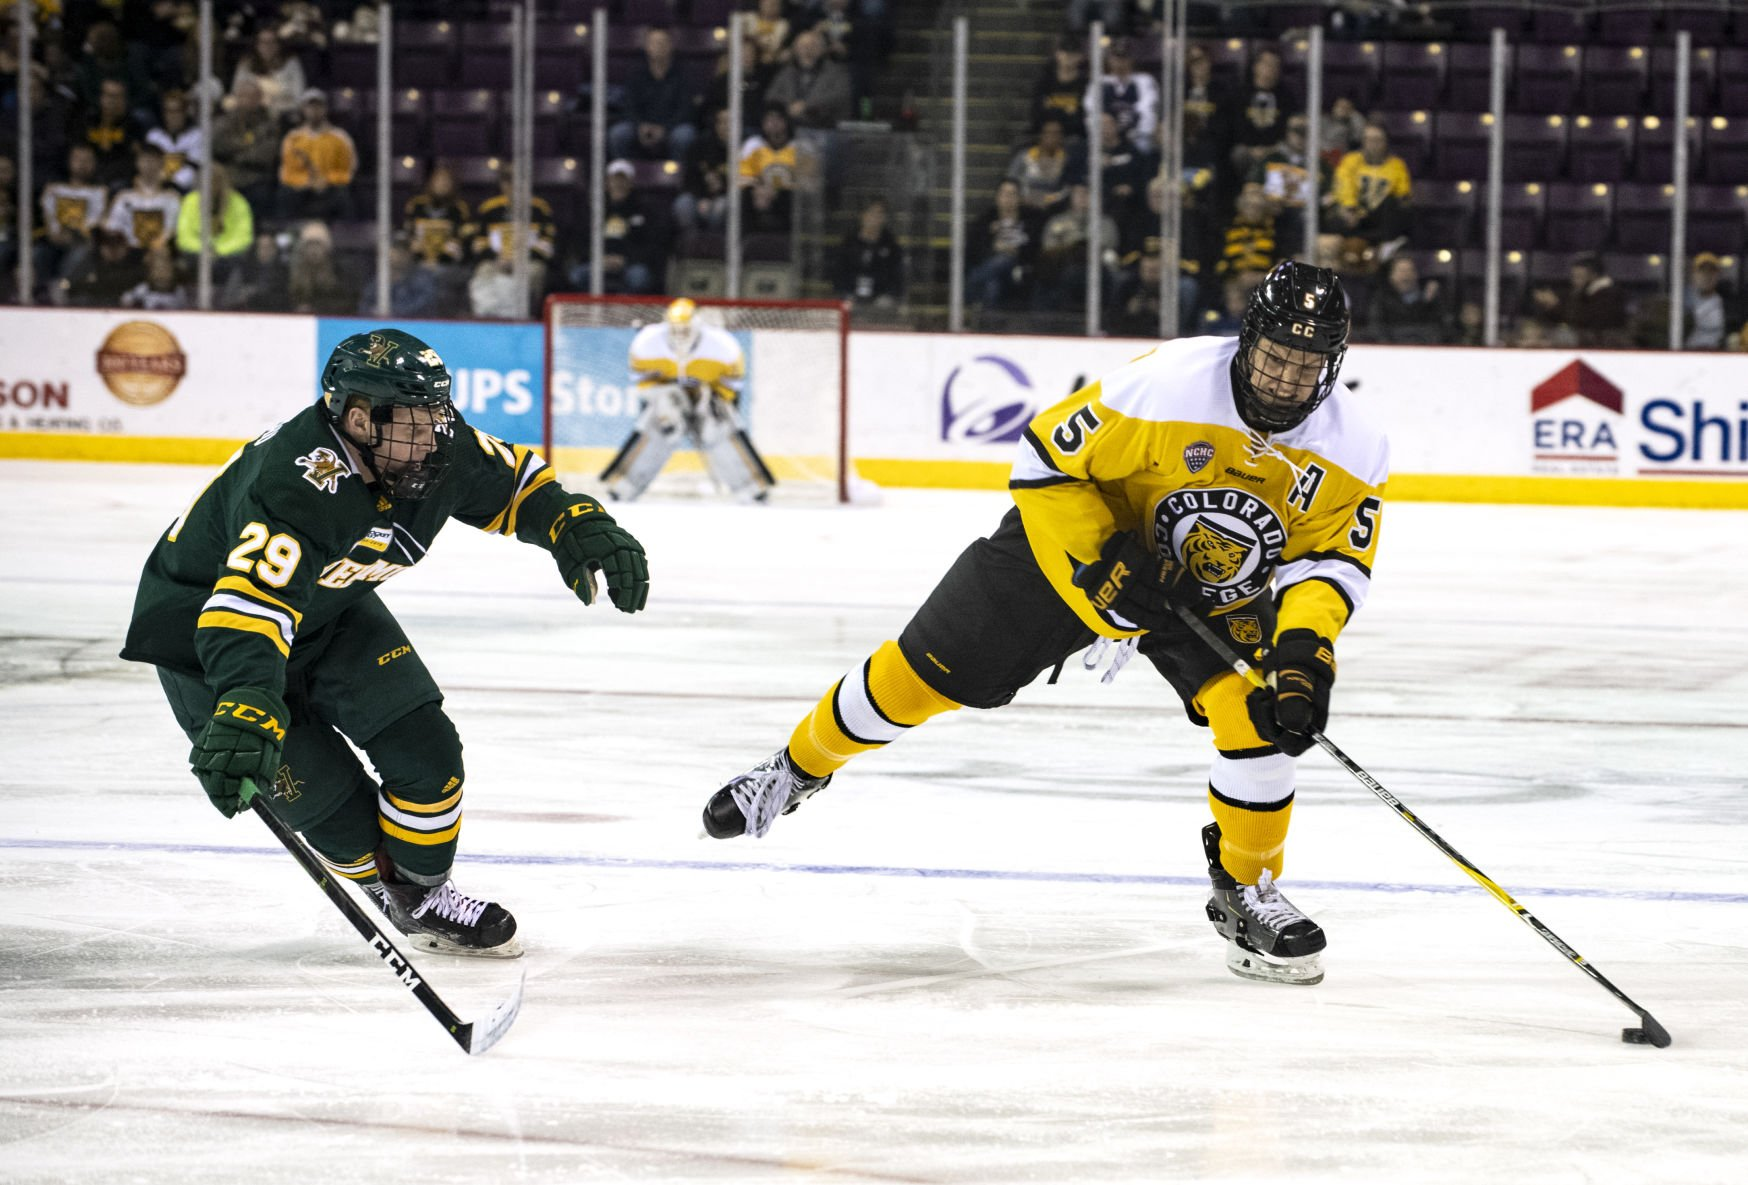 NCHC: Colorado College Hockey Focused On Positives On Road Trip To Miami